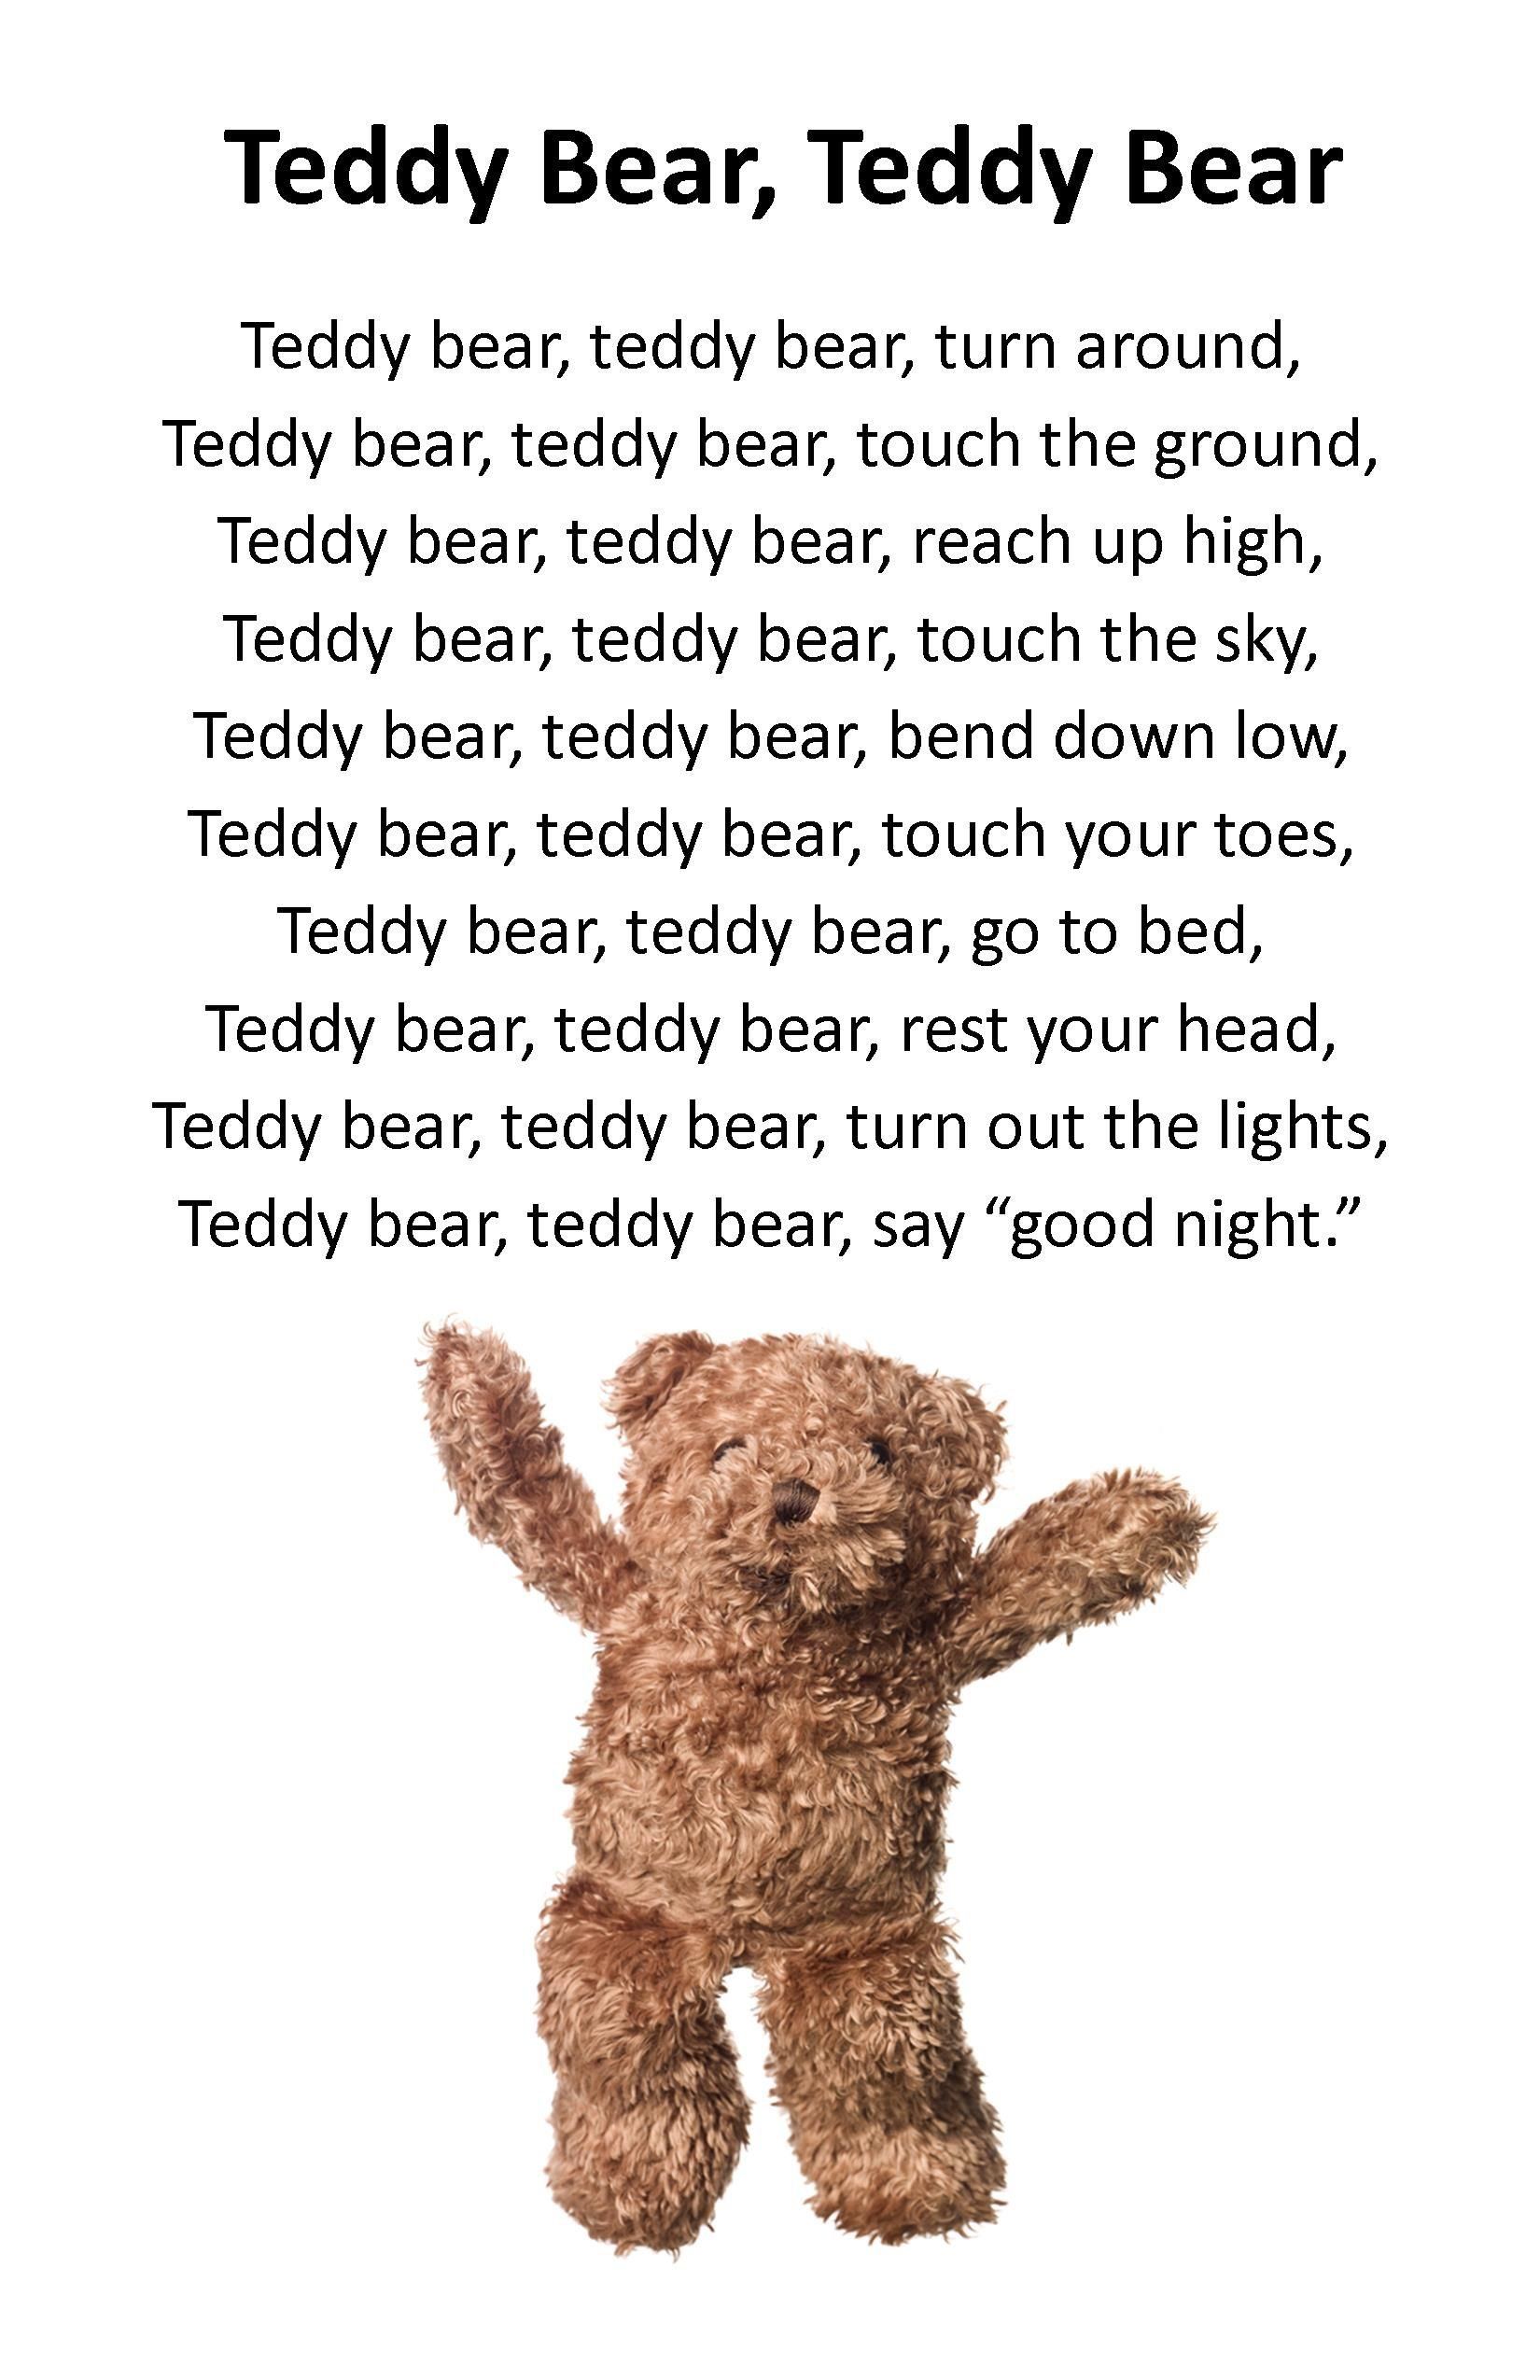 Itty Bitty Rhyme Teddy Bear Teddy Bear